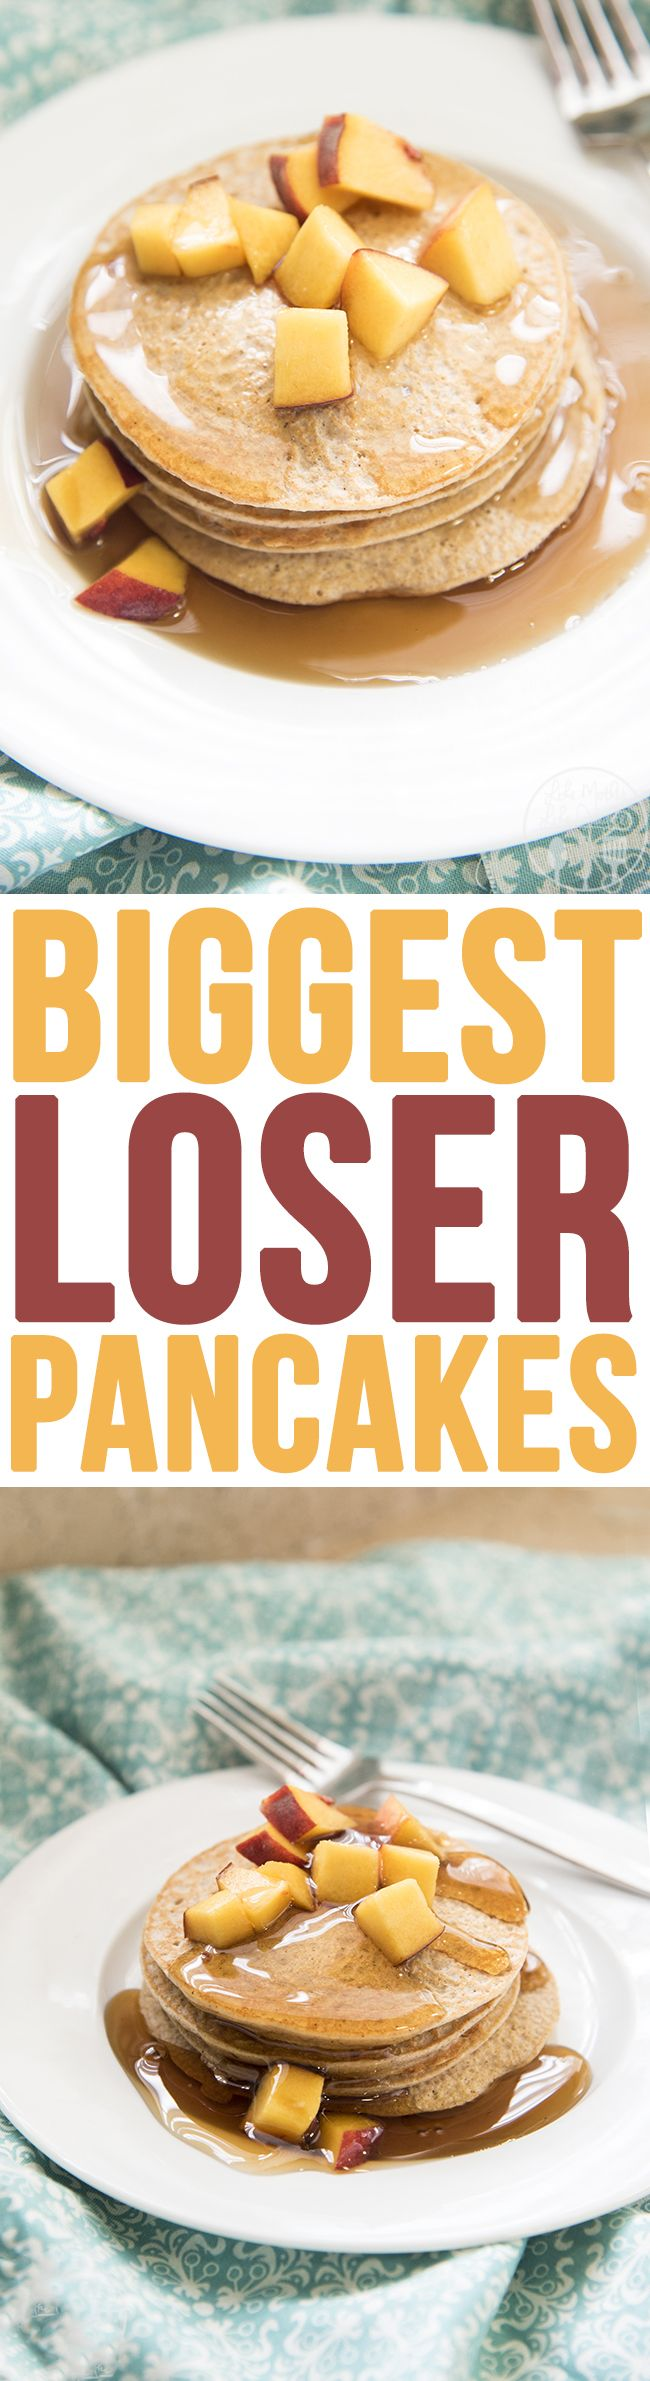 Biggest Loser Pancakes - You'll be surprised by the ingredients in these easy, low calorie, and delicious pancakes. You won't believe how good they are! Perfect for breakfast or dinner!